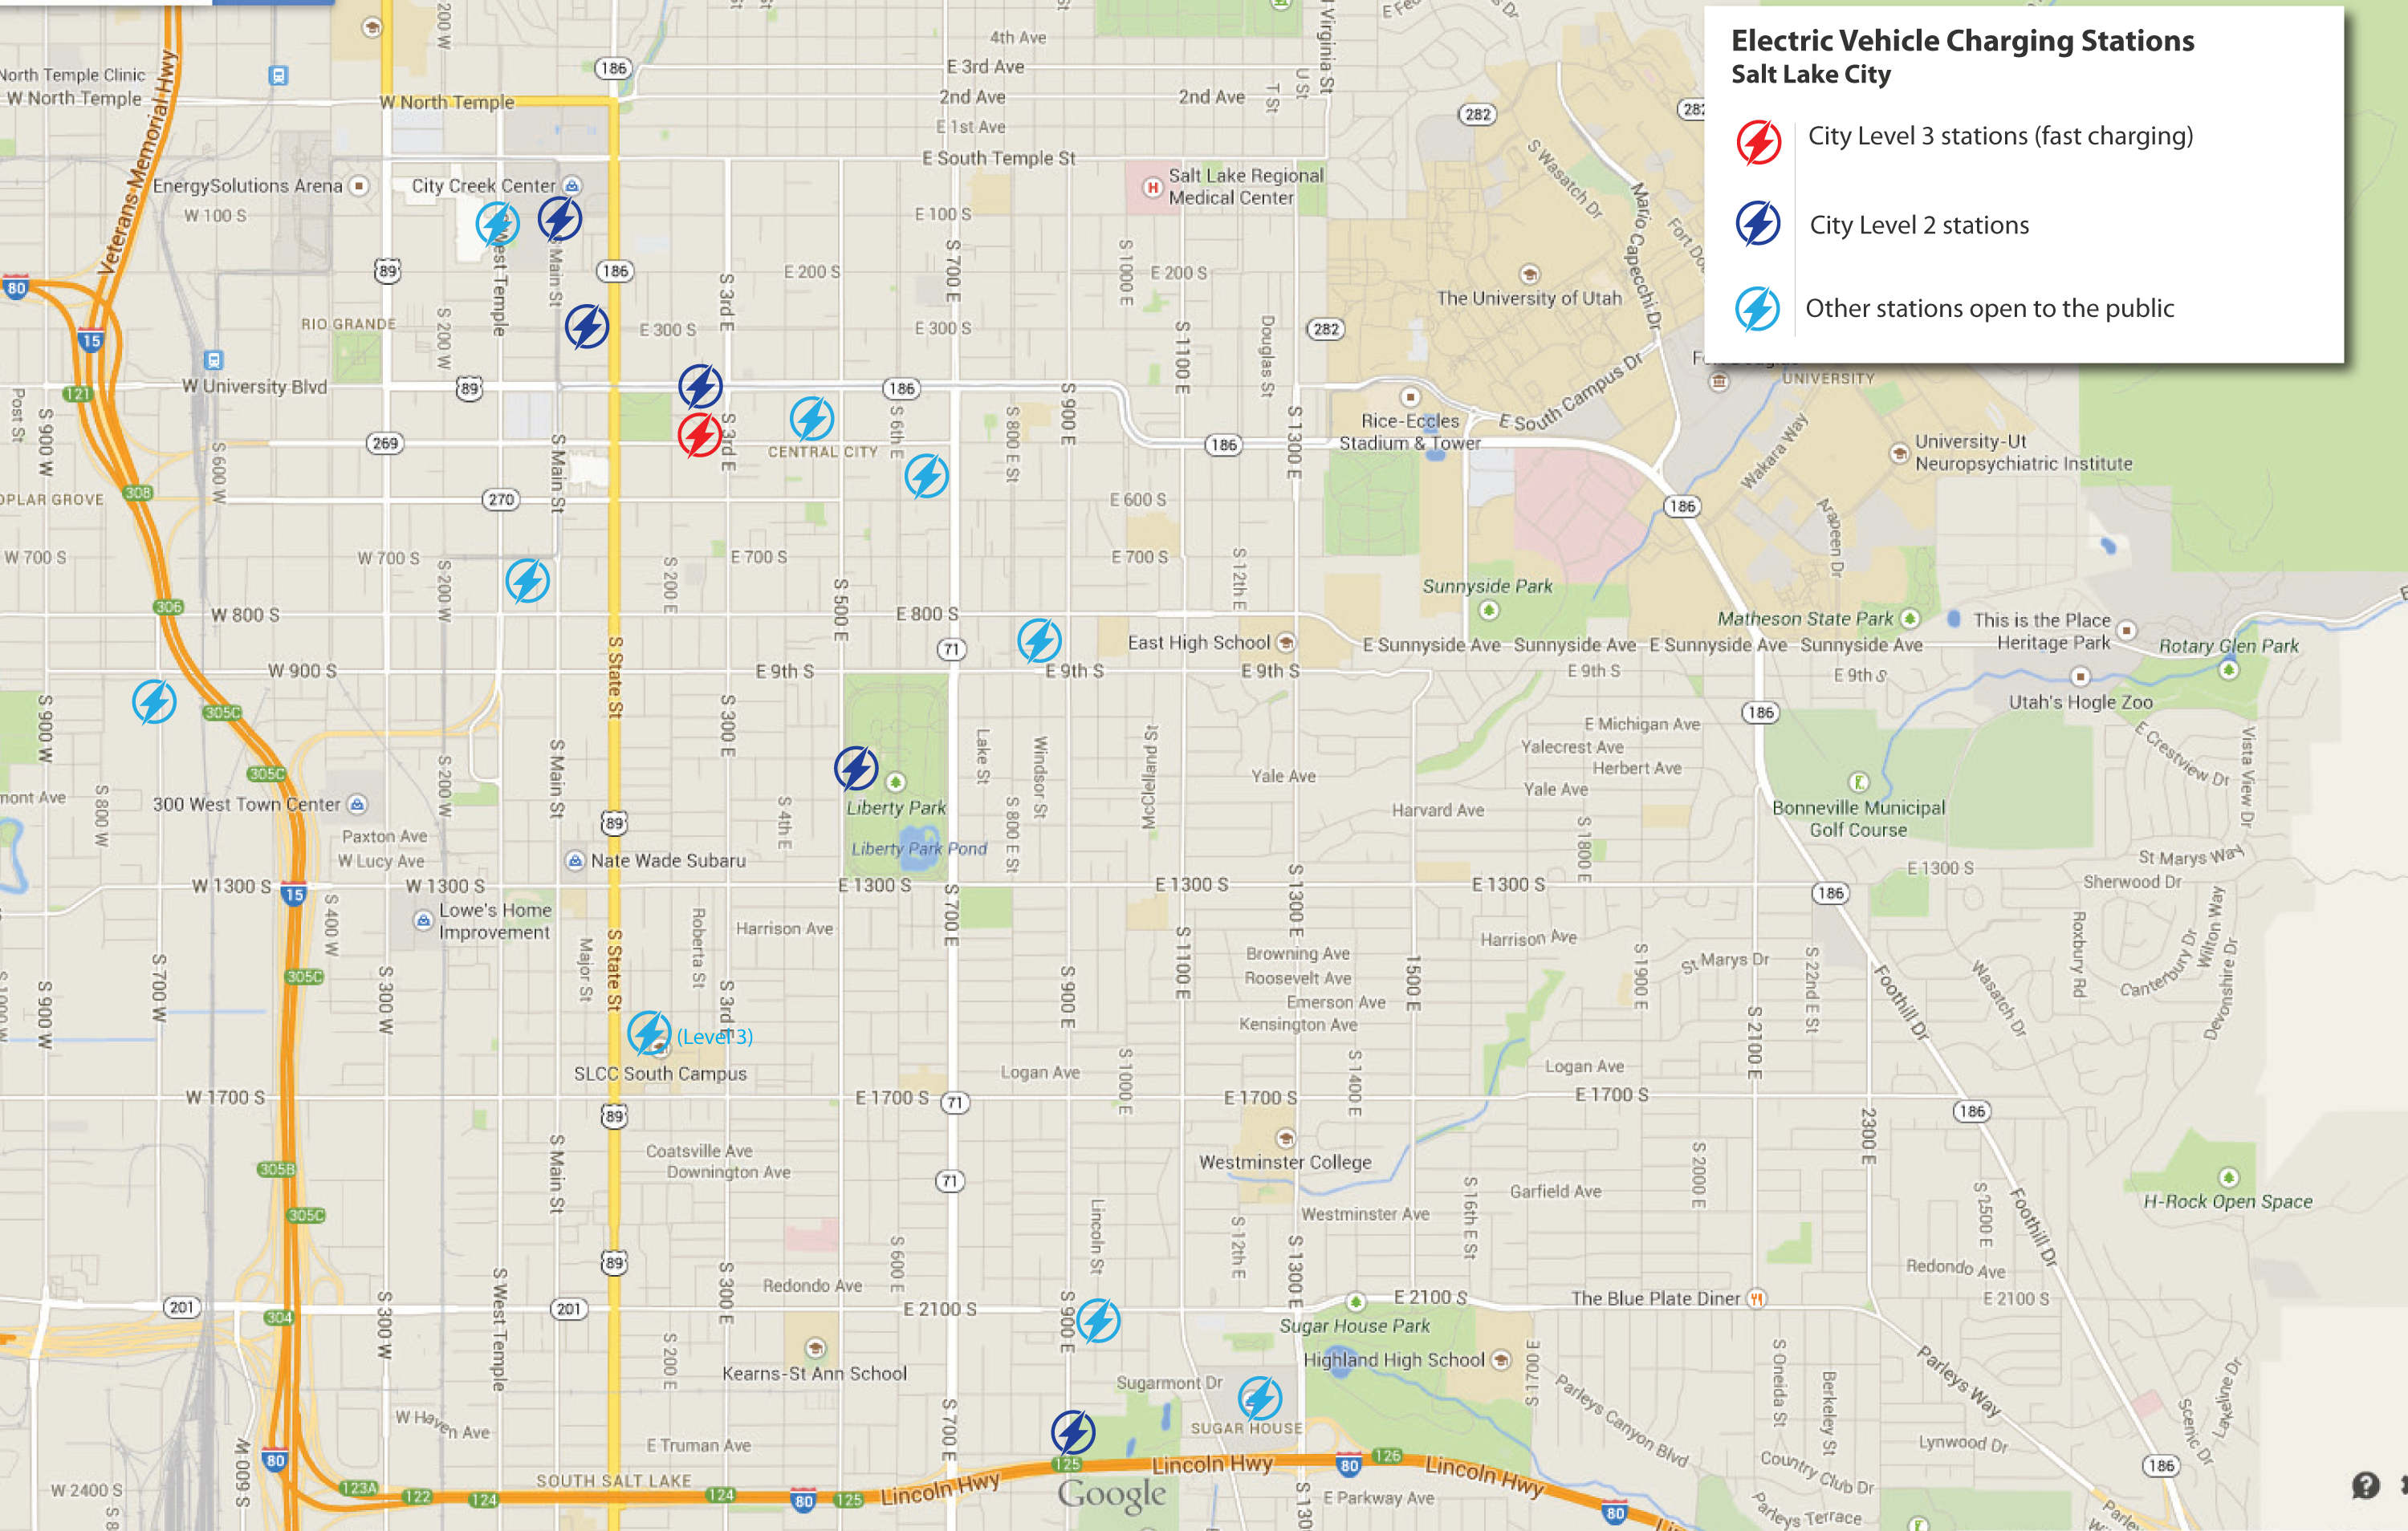 Map of charging stations located in Salt Lake City.